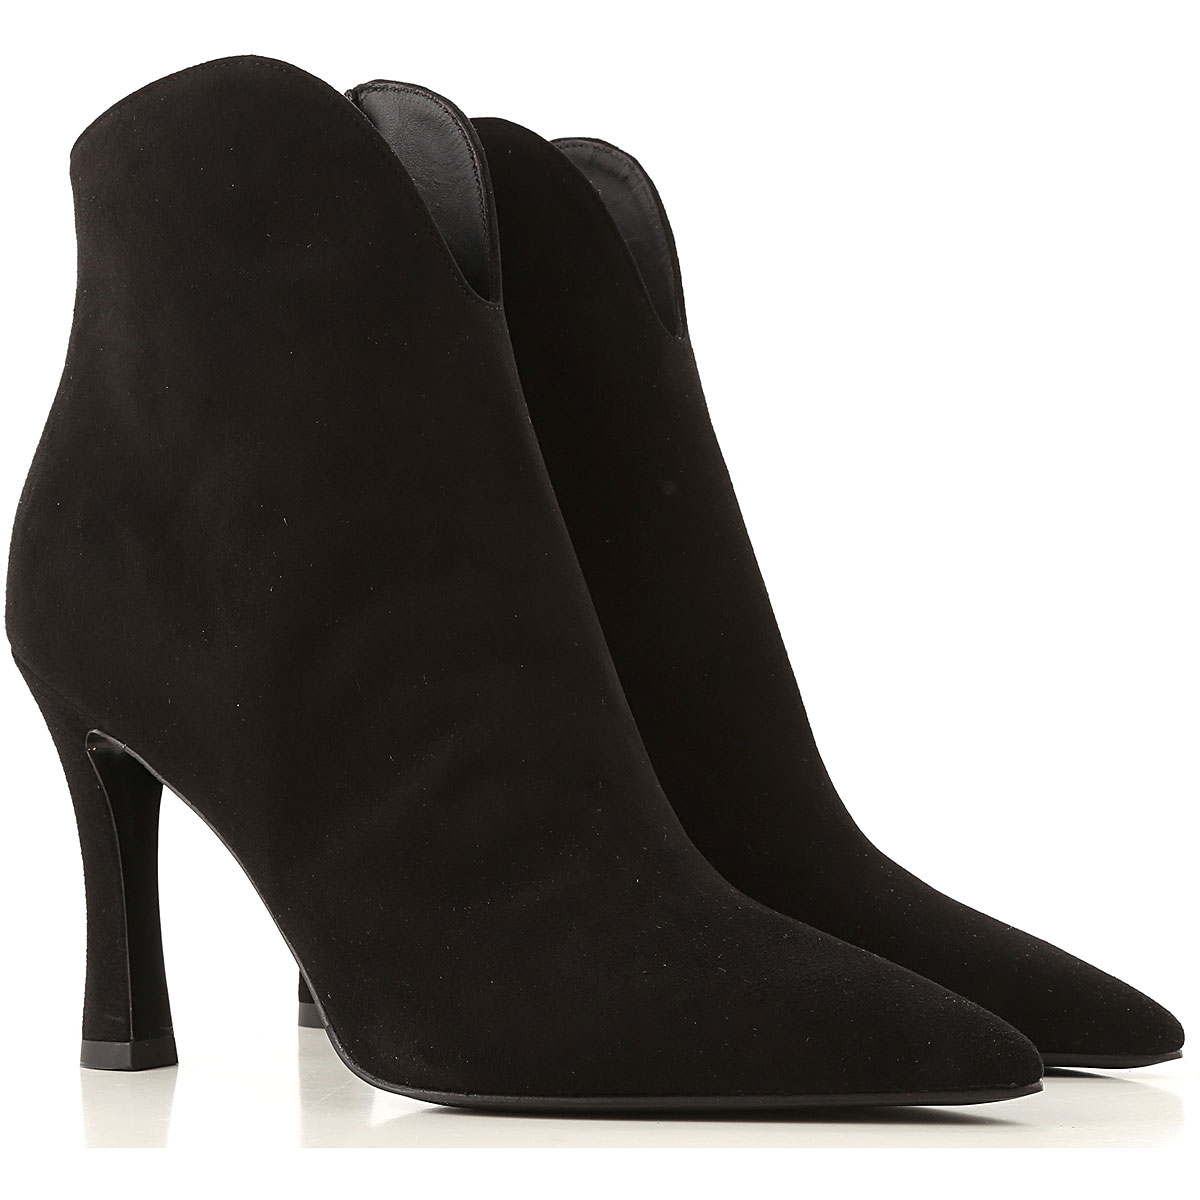 Lella Baldi Boots for Women, Booties On Sale, Black, Suede leather, 2019, 6 8 9